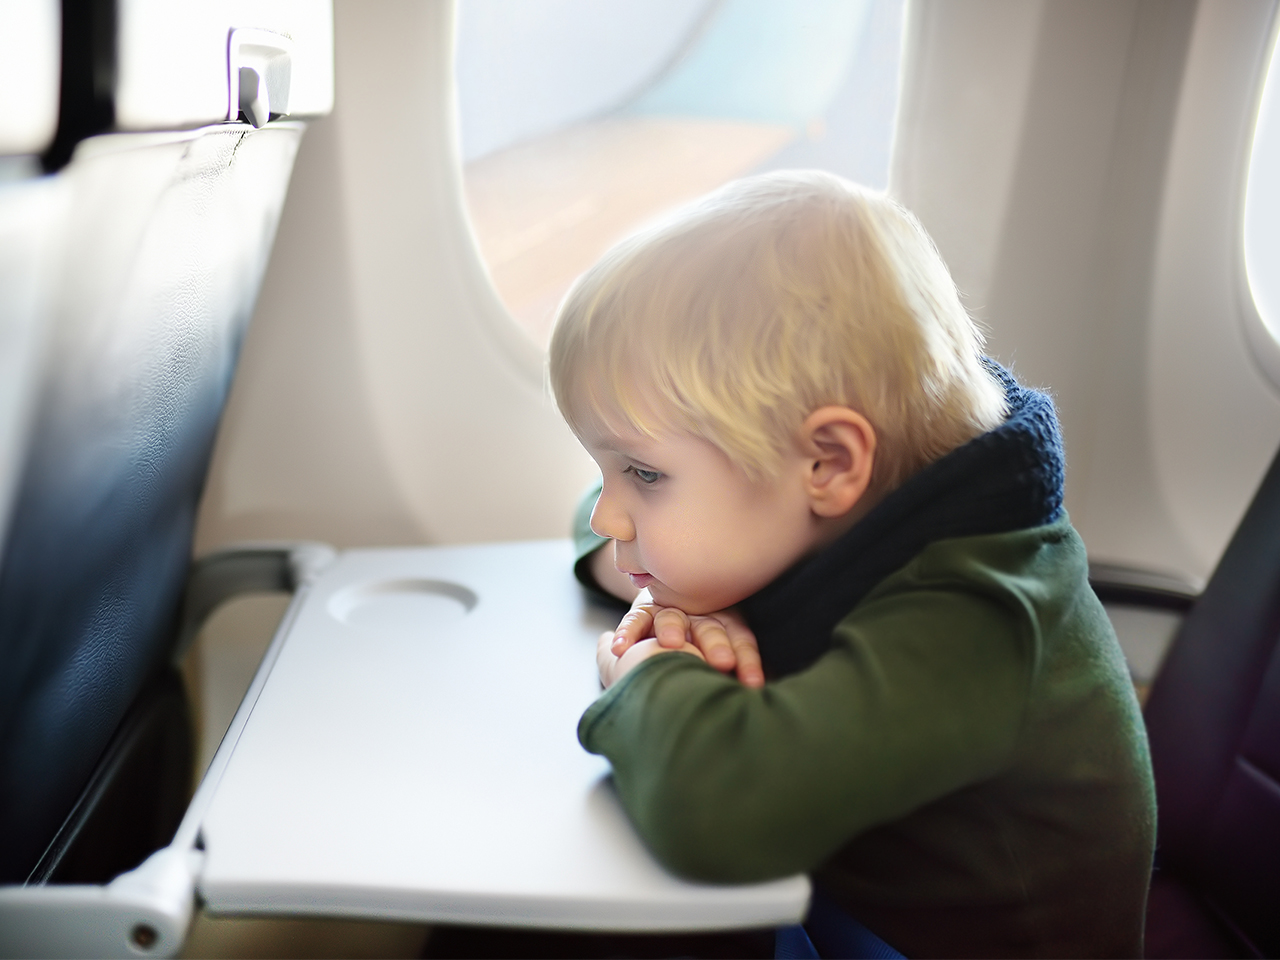 Lonely young boy sitting on airplane